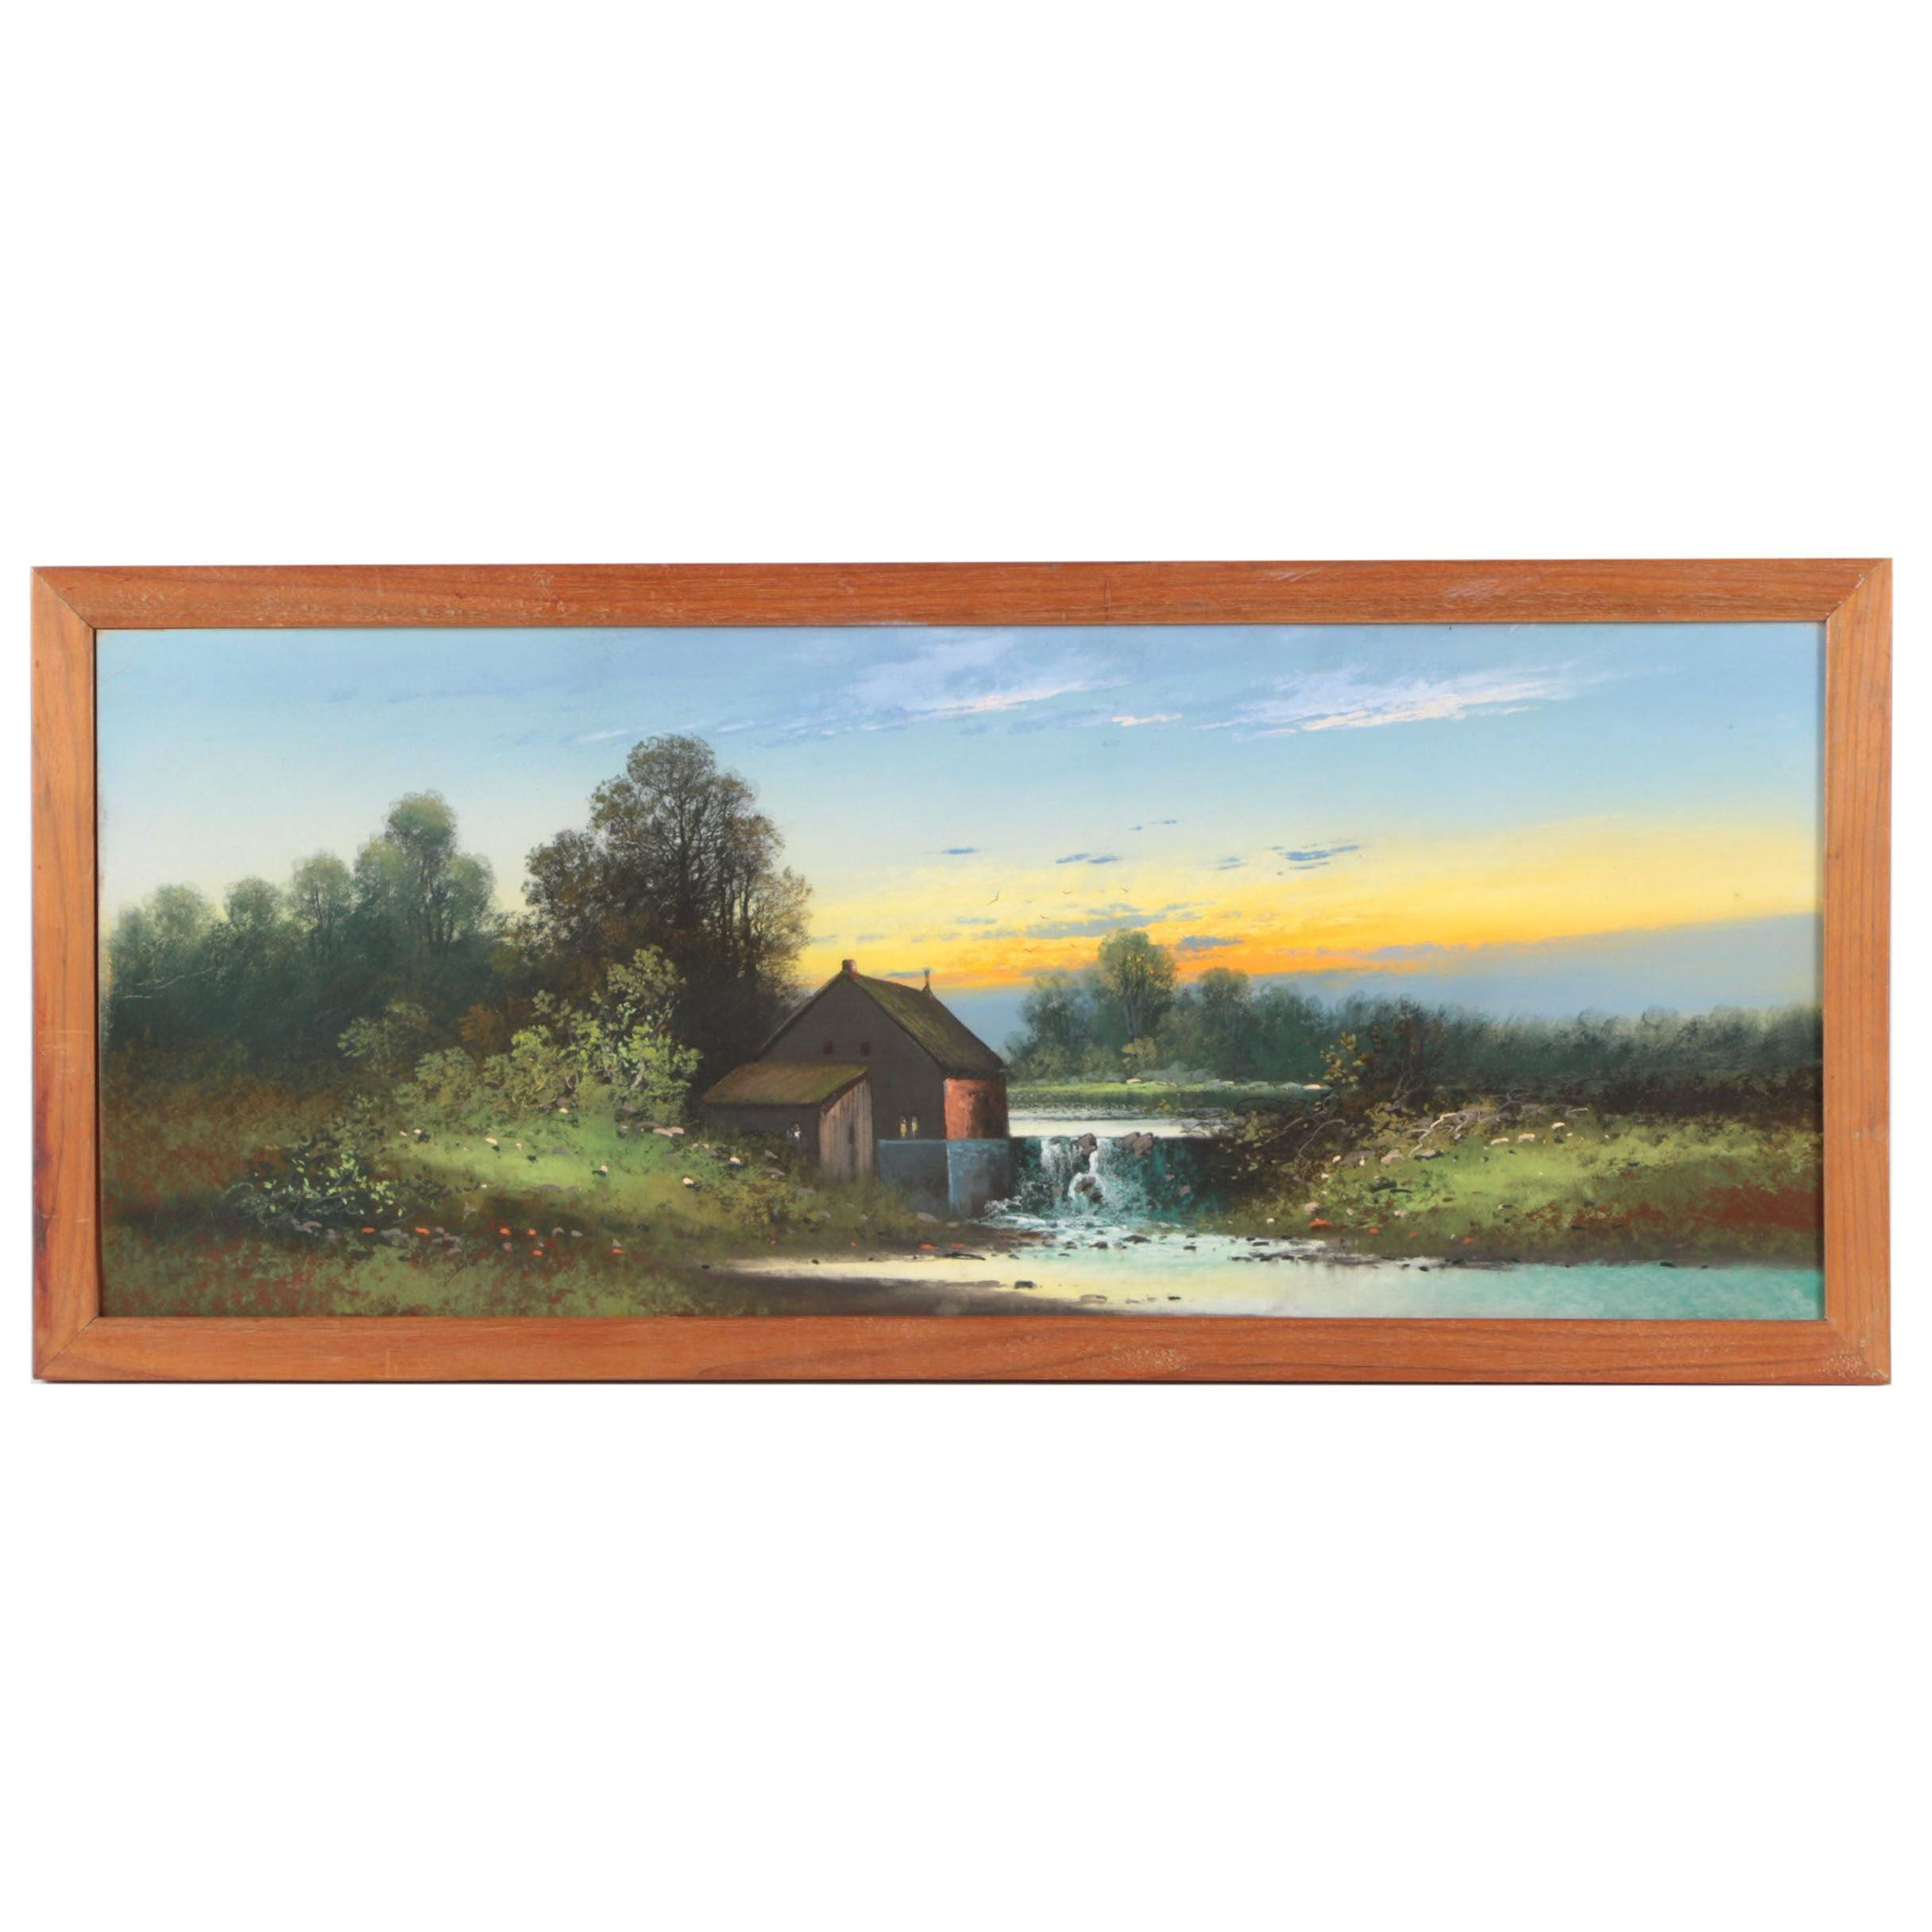 Pastel Drawing on Panel of a Rural Scene